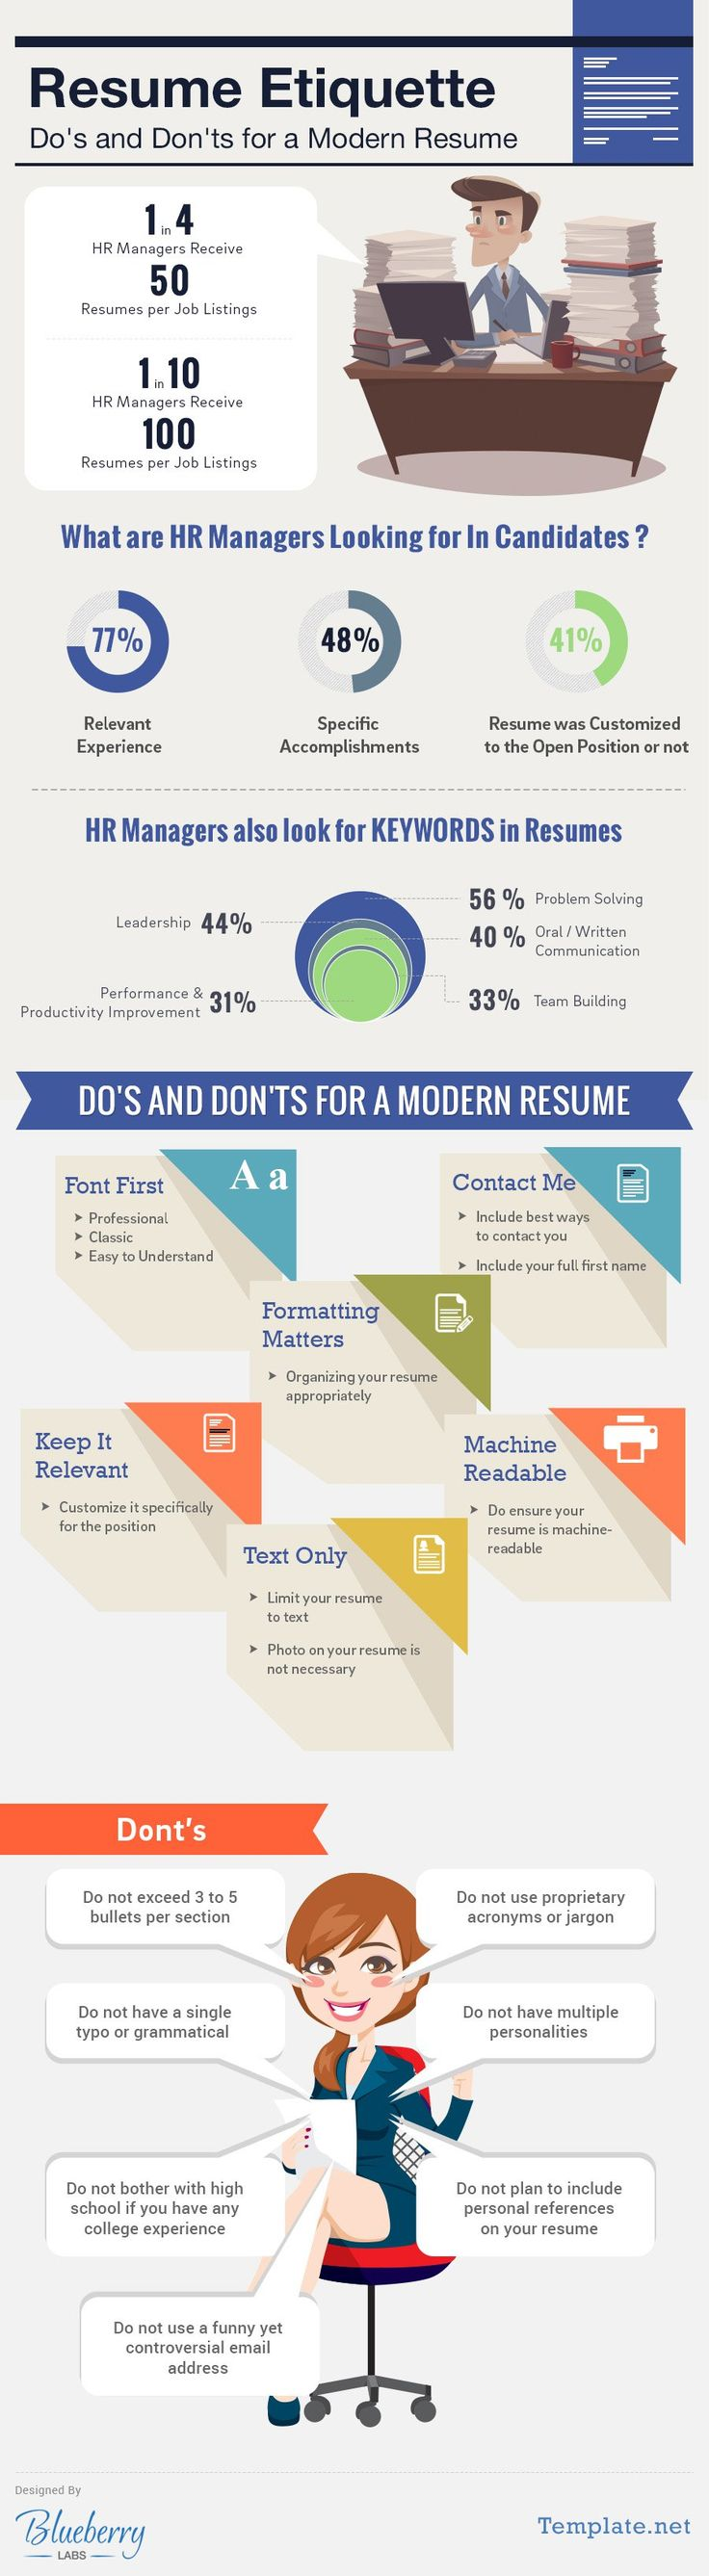 Best Profilia Cv  Resumes Tips Advice  Interesting